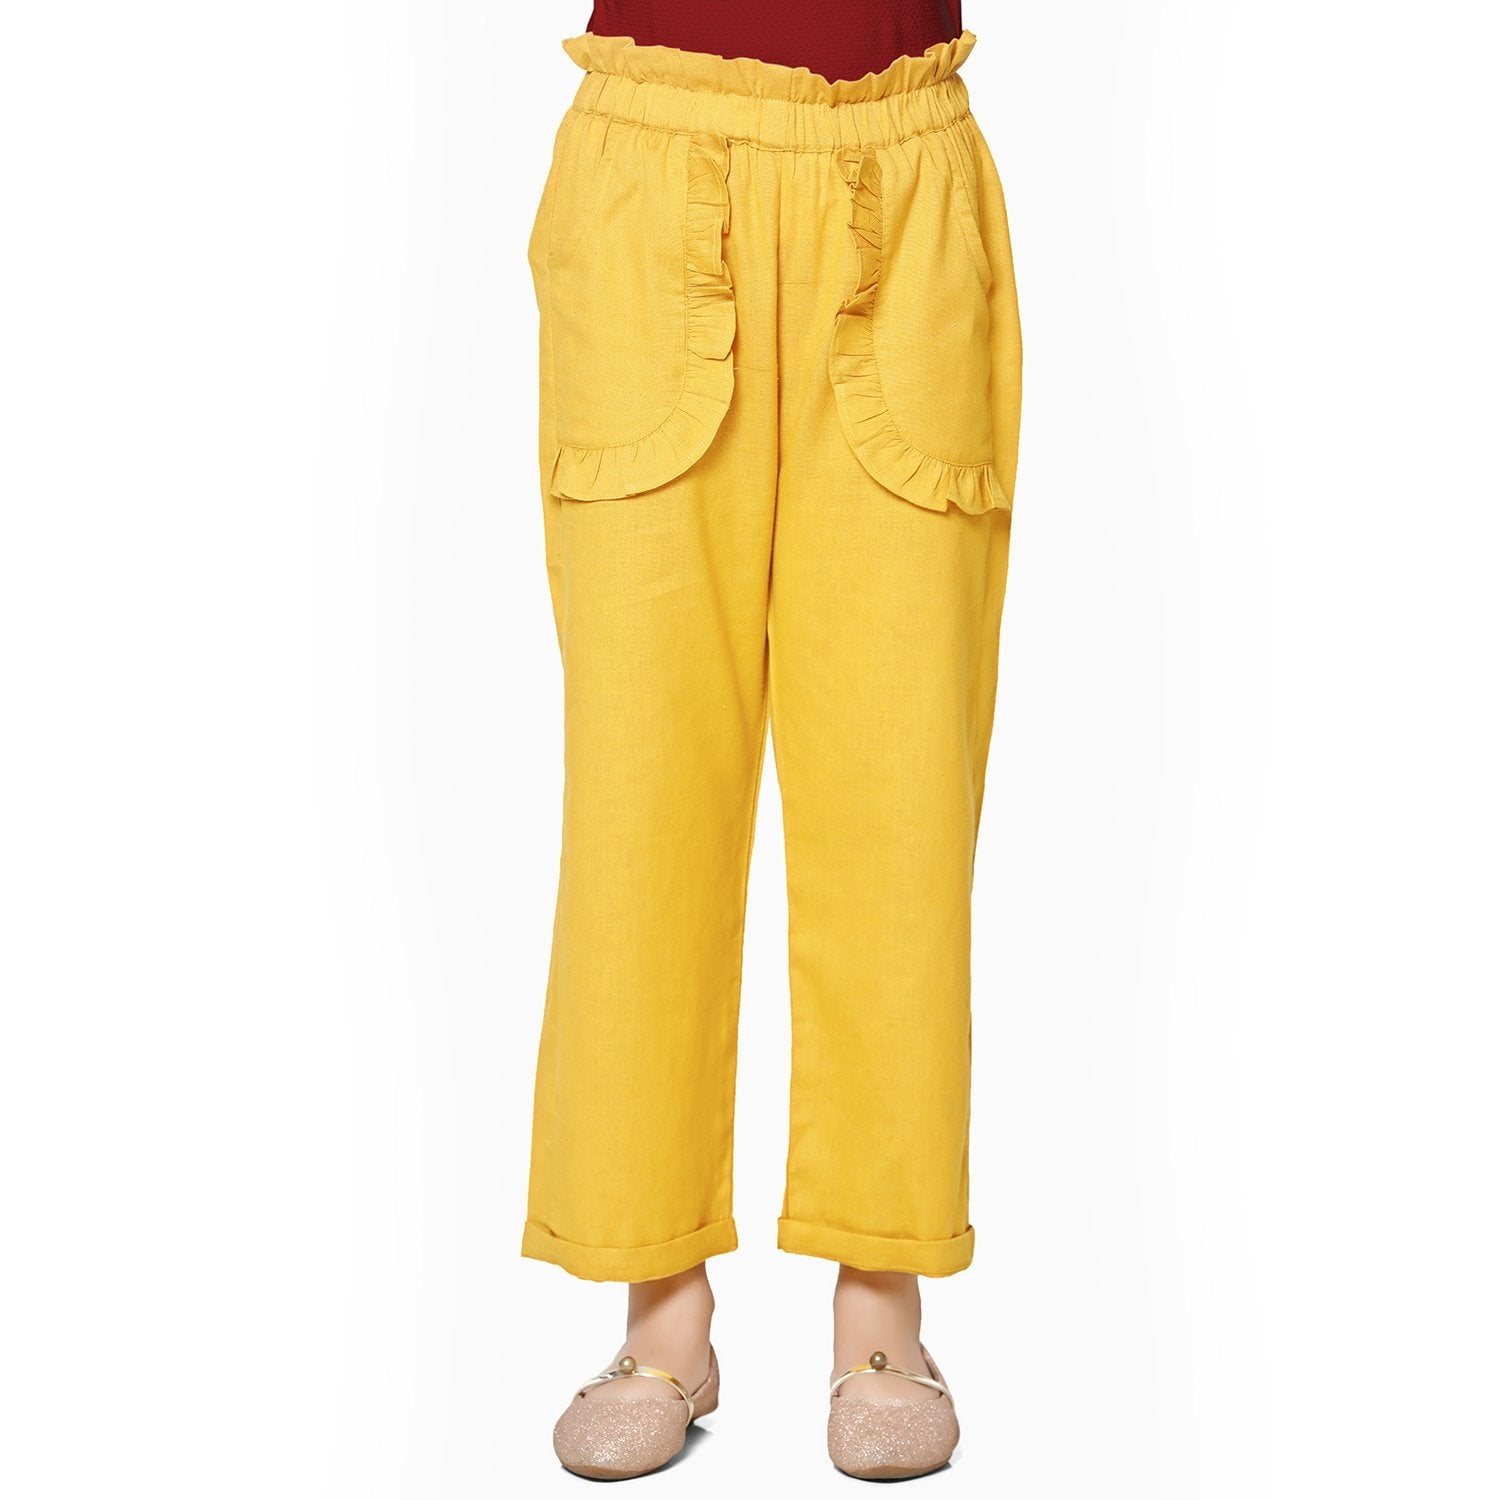 Cotton Blend Yellow Palazzo in Casual Wear For Girls